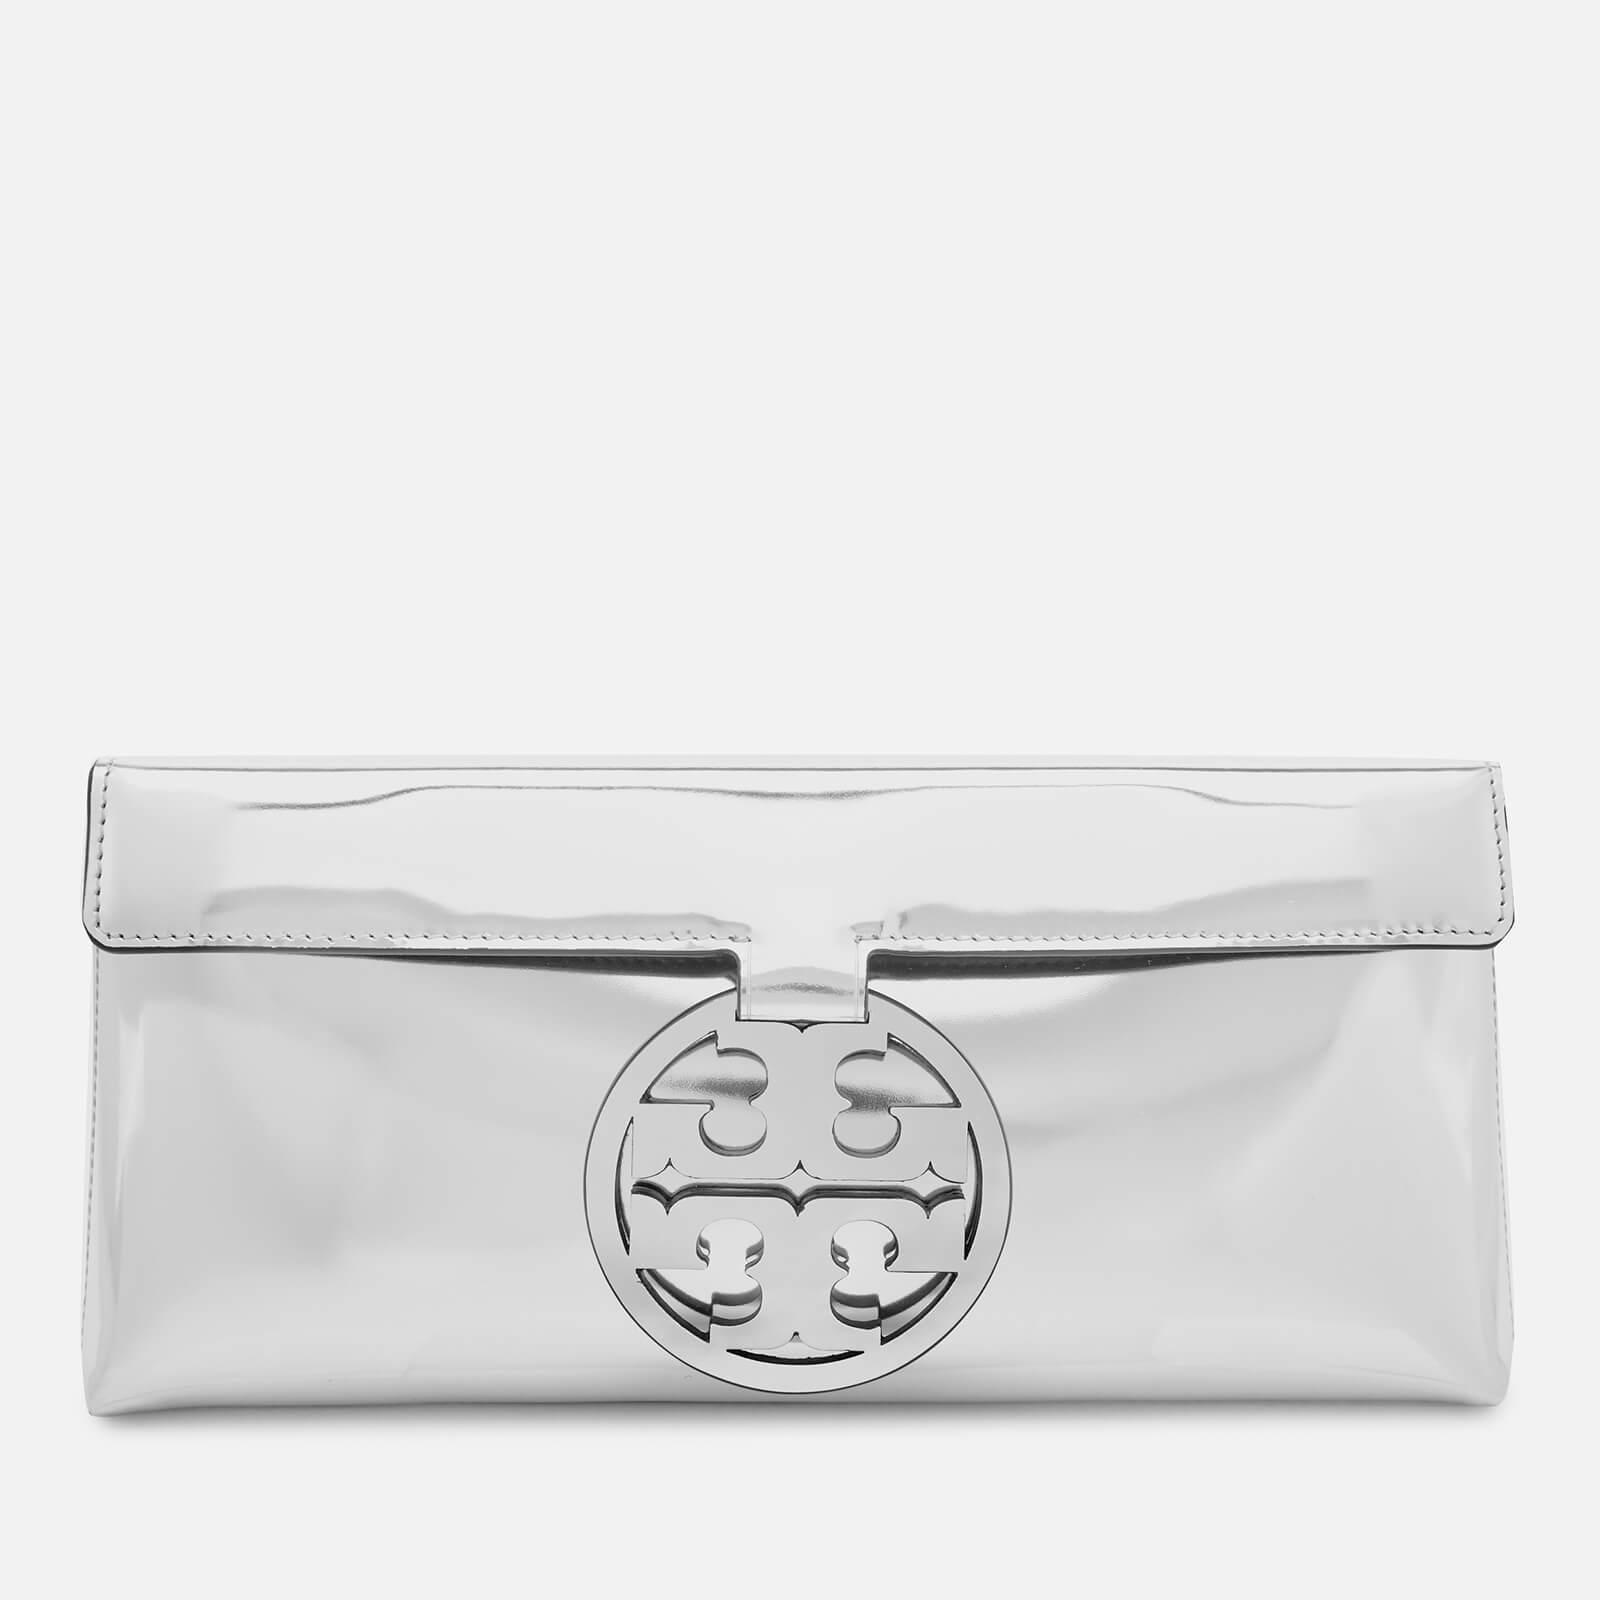 1a3ced0bece2 Gallery. Previously sold at  MyBag · Women s Metallic Clutch Bags ...